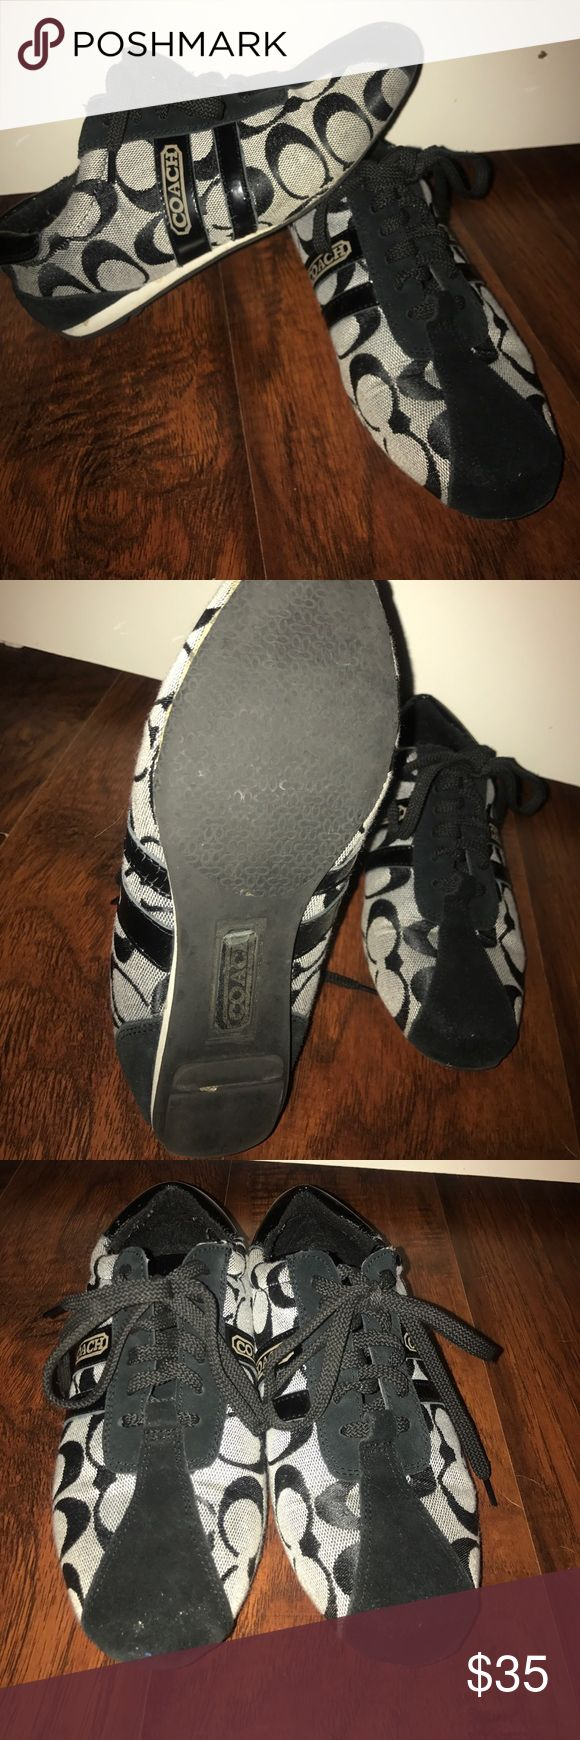 Coach Tennis Shoes Women's Coach tennis shoes. Size 6, black and grey, mildly worn. Coach Shoes Sneakers